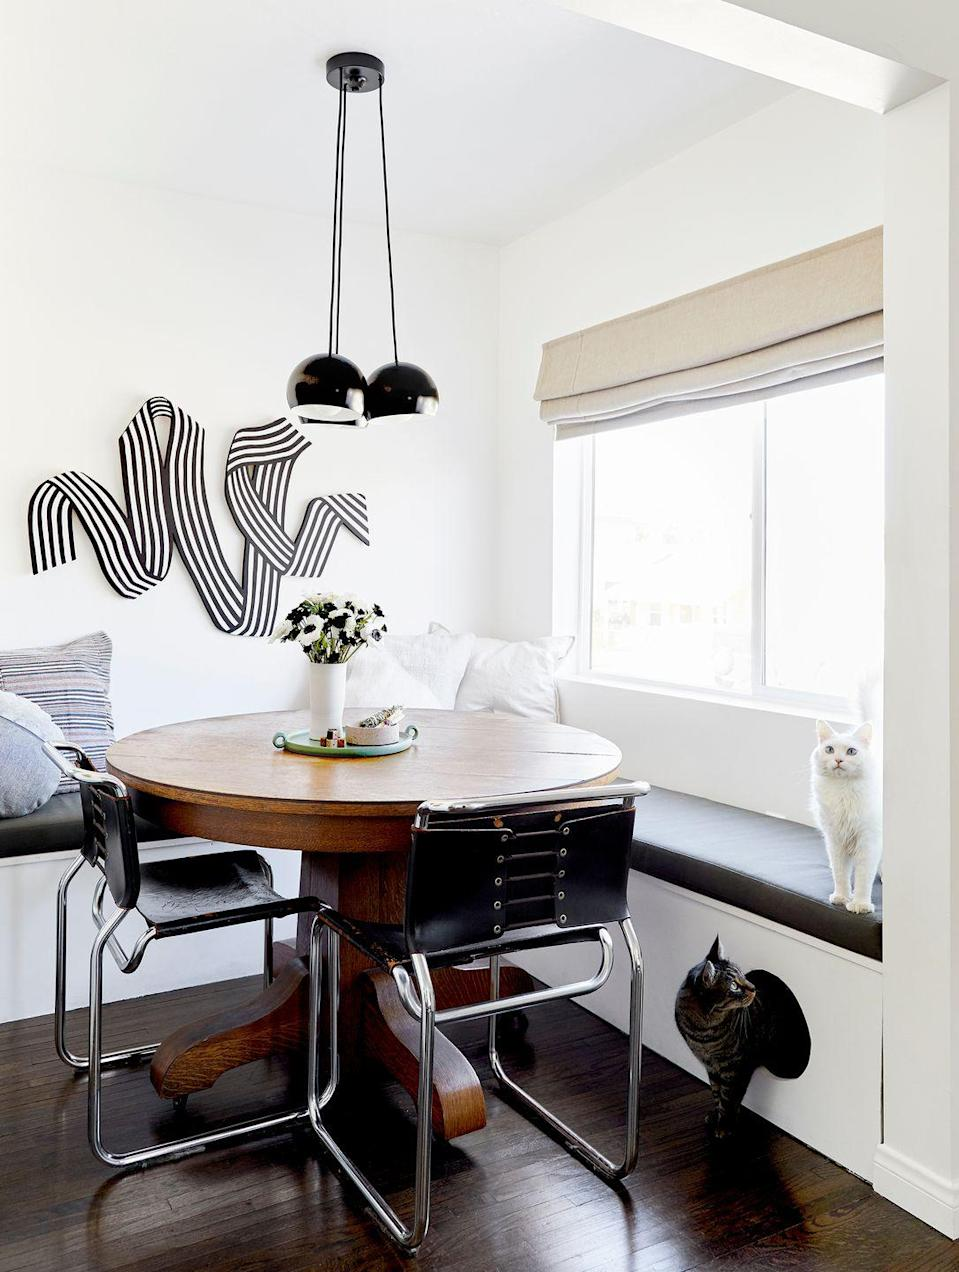 """<p>Take note from this dining nook by <a href=""""https://stylebyemilyhenderson.com/blog/moto-reveal-emily-bowsers-bright-dining-nook-custom-cat-friendly-banquette-duh"""" rel=""""nofollow noopener"""" target=""""_blank"""" data-ylk=""""slk:Emily Henderson"""" class=""""link rapid-noclick-resp"""">Emily Henderson</a> and design with your furry friends in mind. This custom banquette features a little doorway for the occupants cats. Though it was initially going to contain extra storage space, they decided a """"kitty cave"""" was a lot more fun. The top folds up when you remove the cushion just in case the cats need help finding another exit. </p>"""